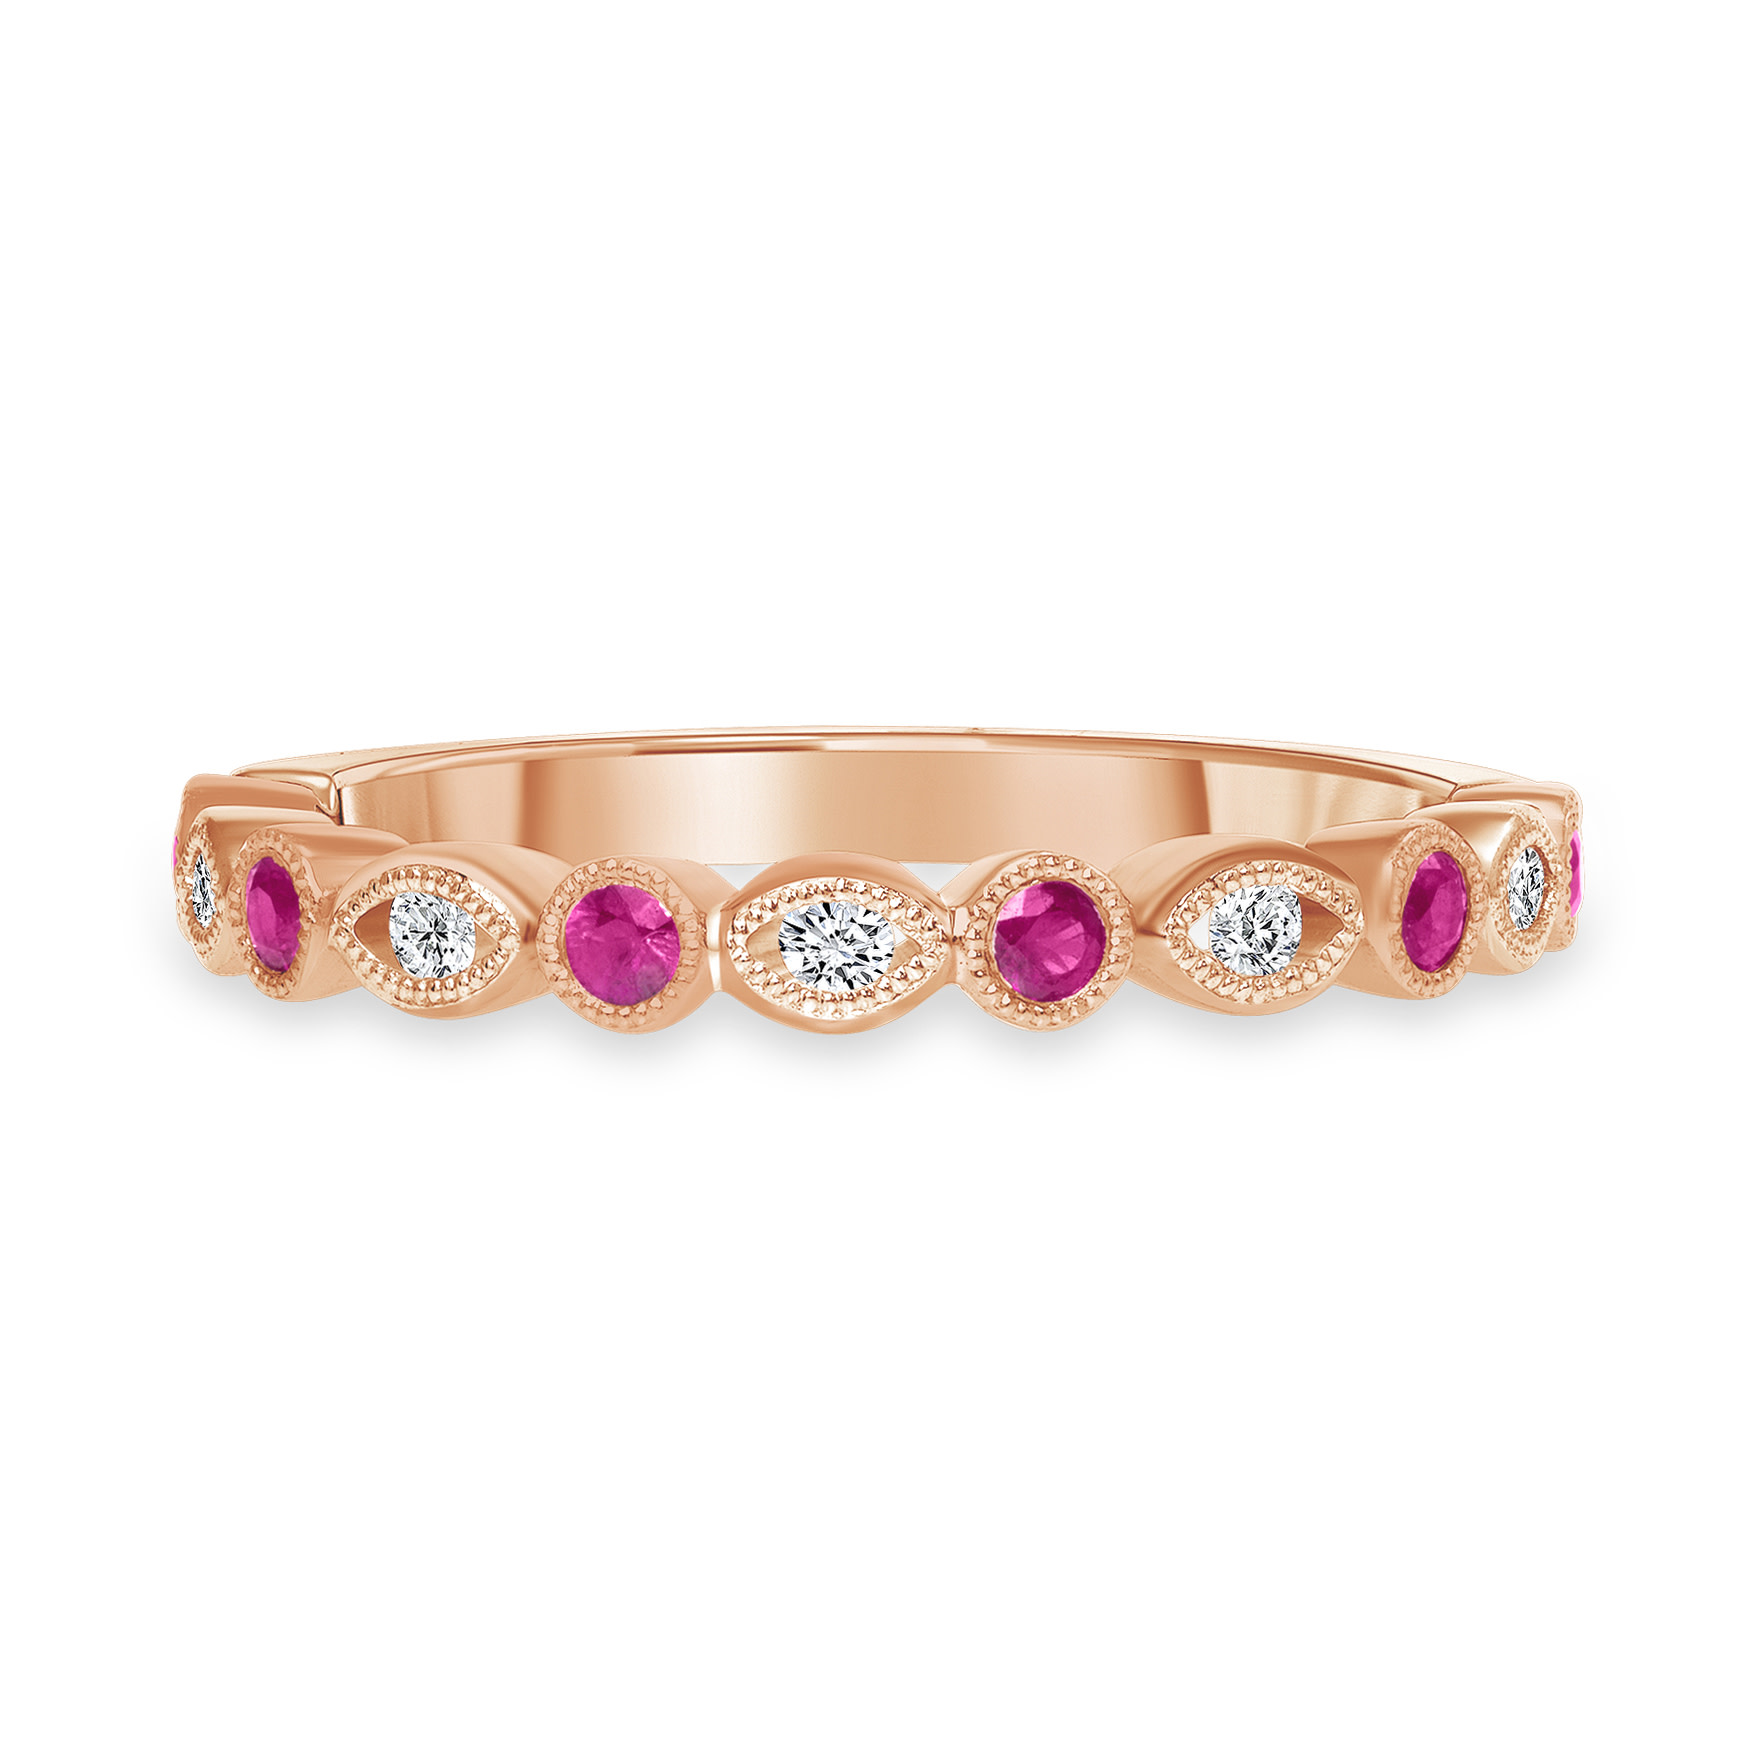 diamond ruby ring | gold diamond ruby ring | women's diamond ruby ring